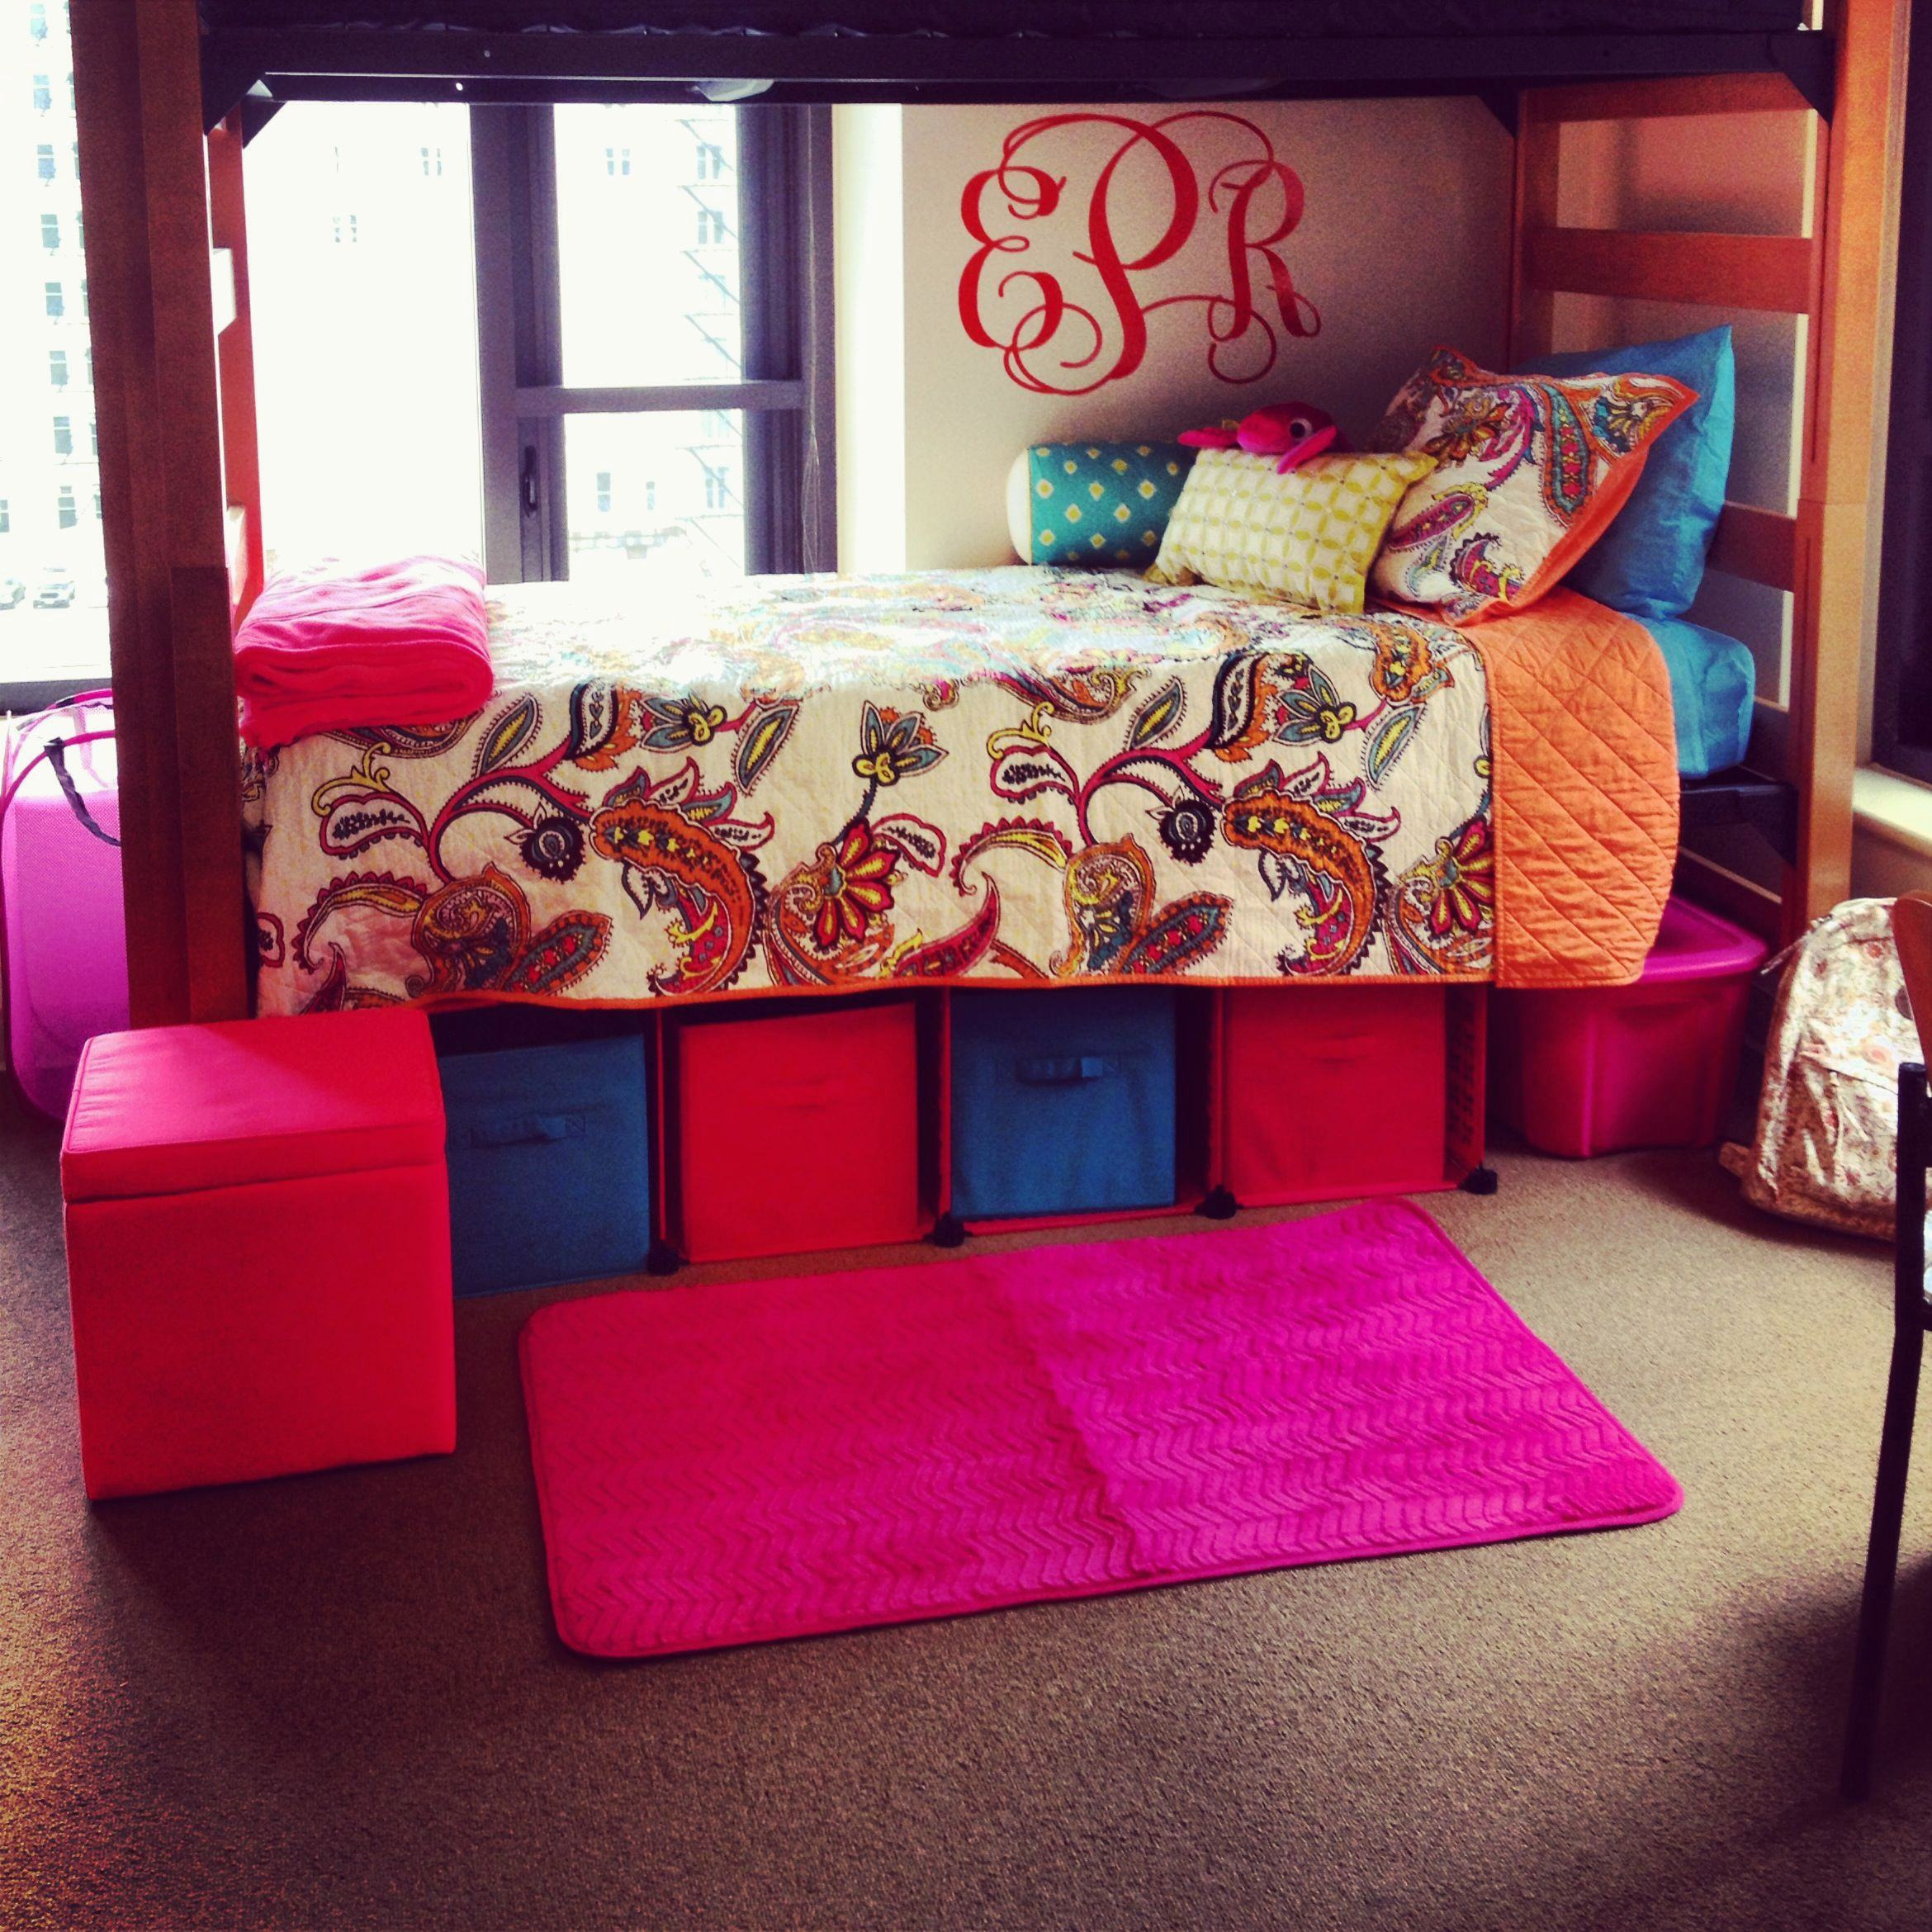 a-college-student-dorm-bed-decorated-with-vibrant-colored-objects.